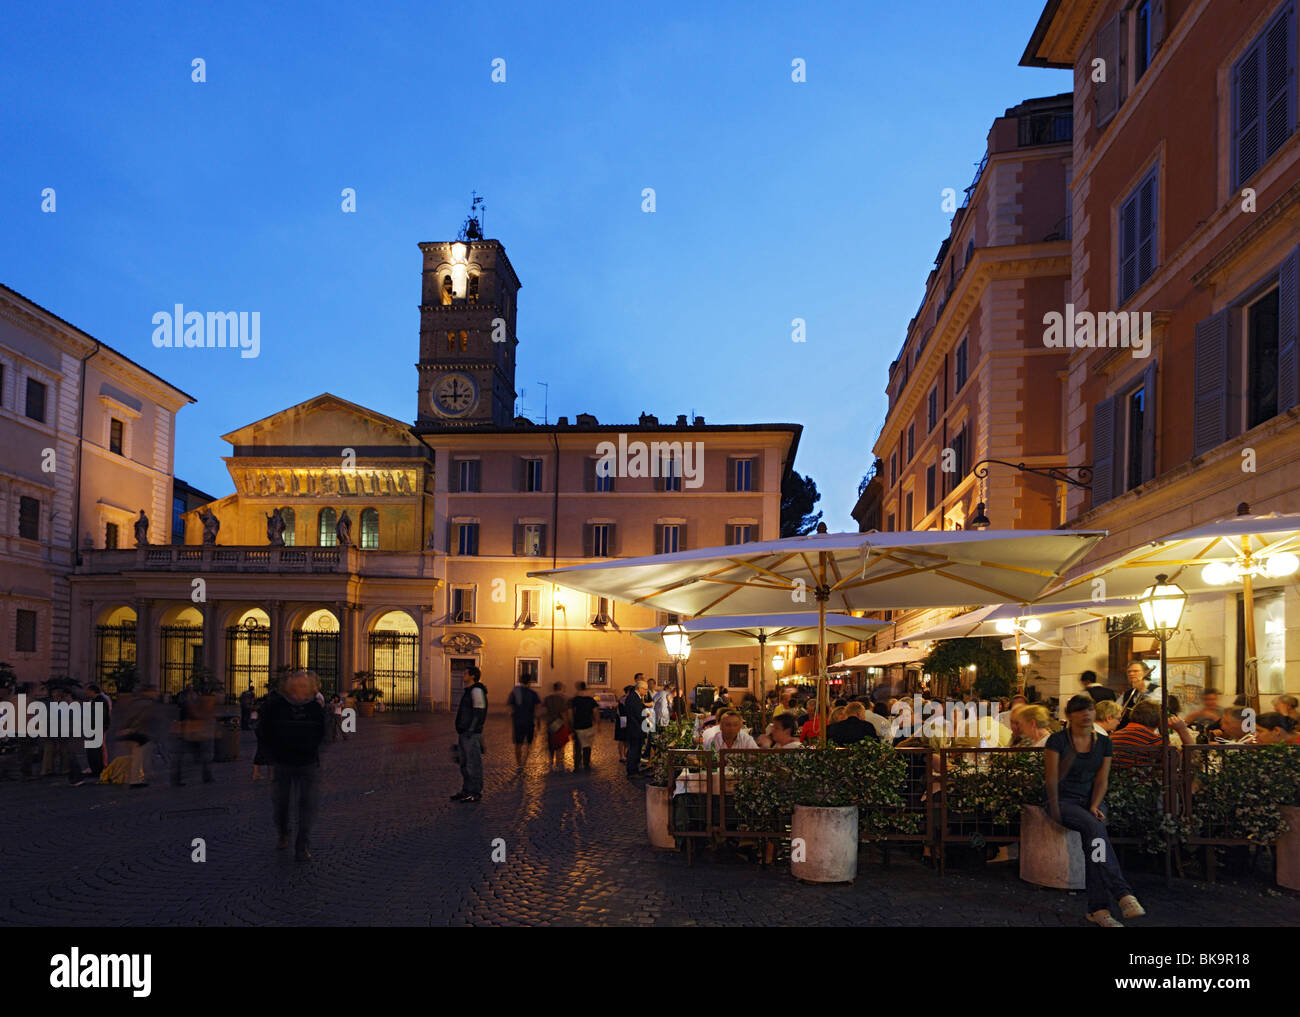 Guests in a pavement cafe, Santa Maria in Trastevere church in background, Rome, Italy - Stock Image